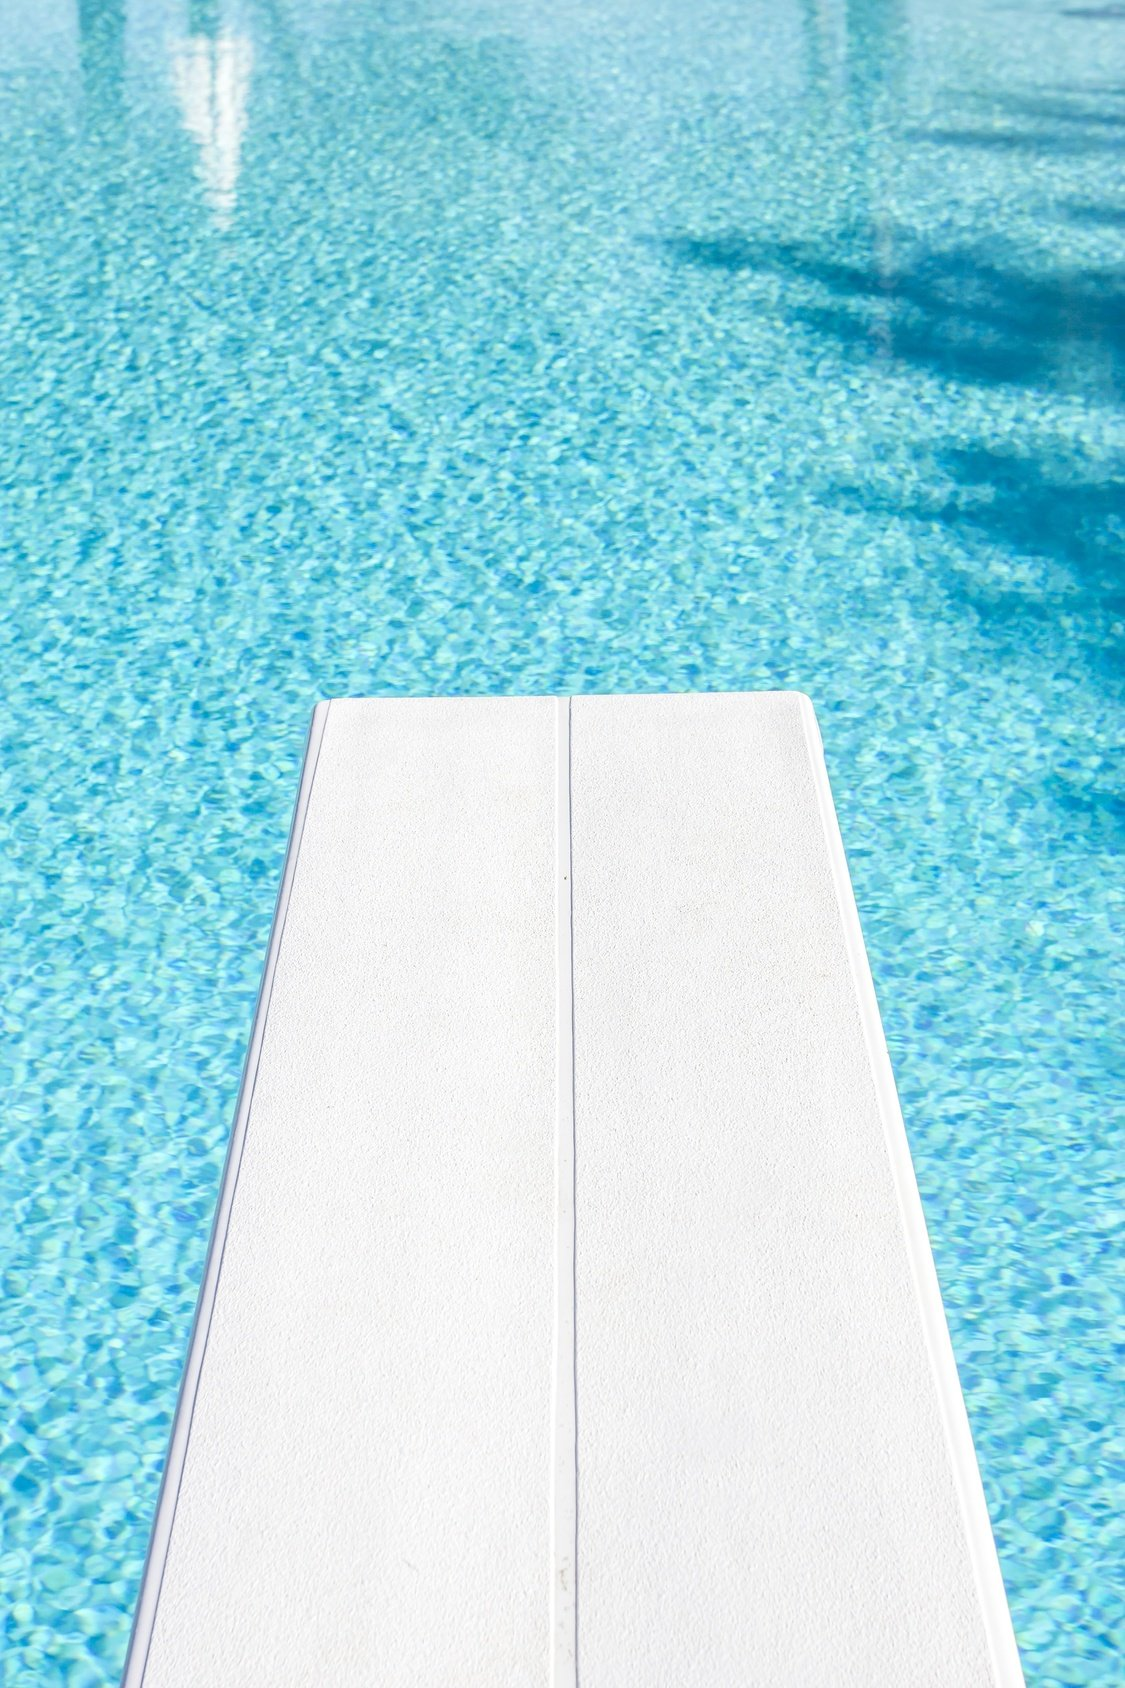 Diving Board for Backyard Pool